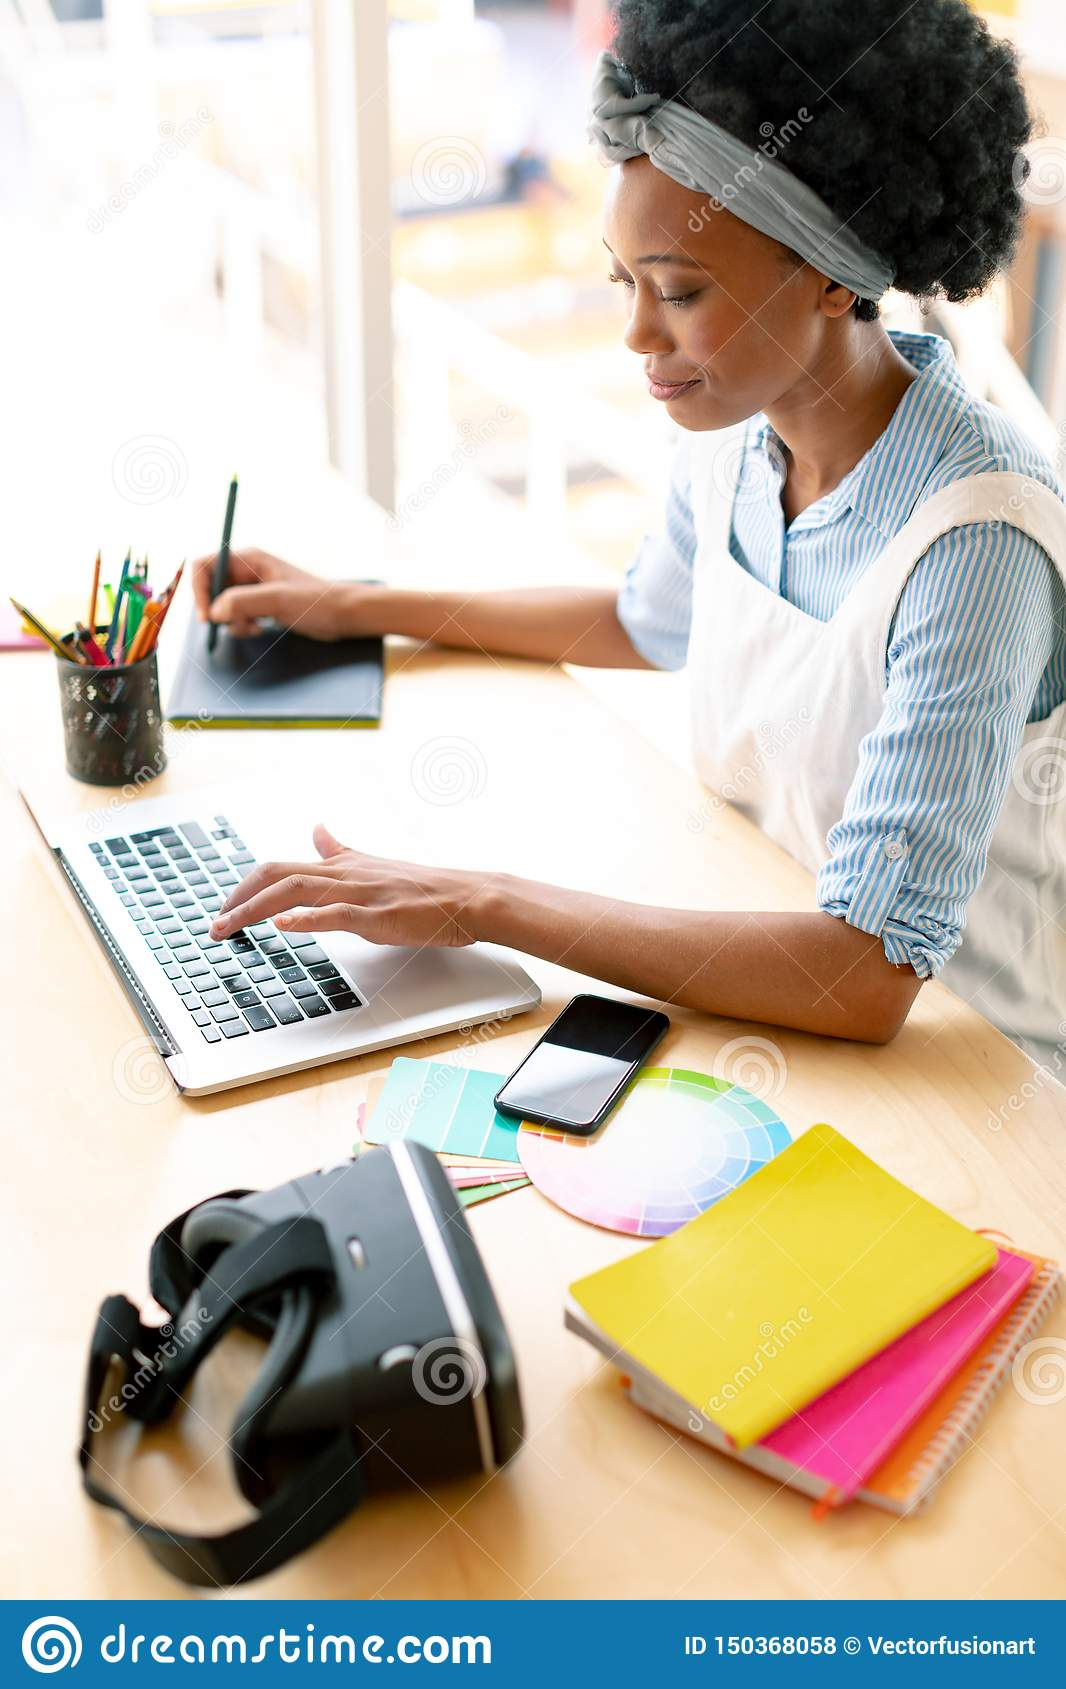 Female graphic designer using graphic tablet and laptop at desk